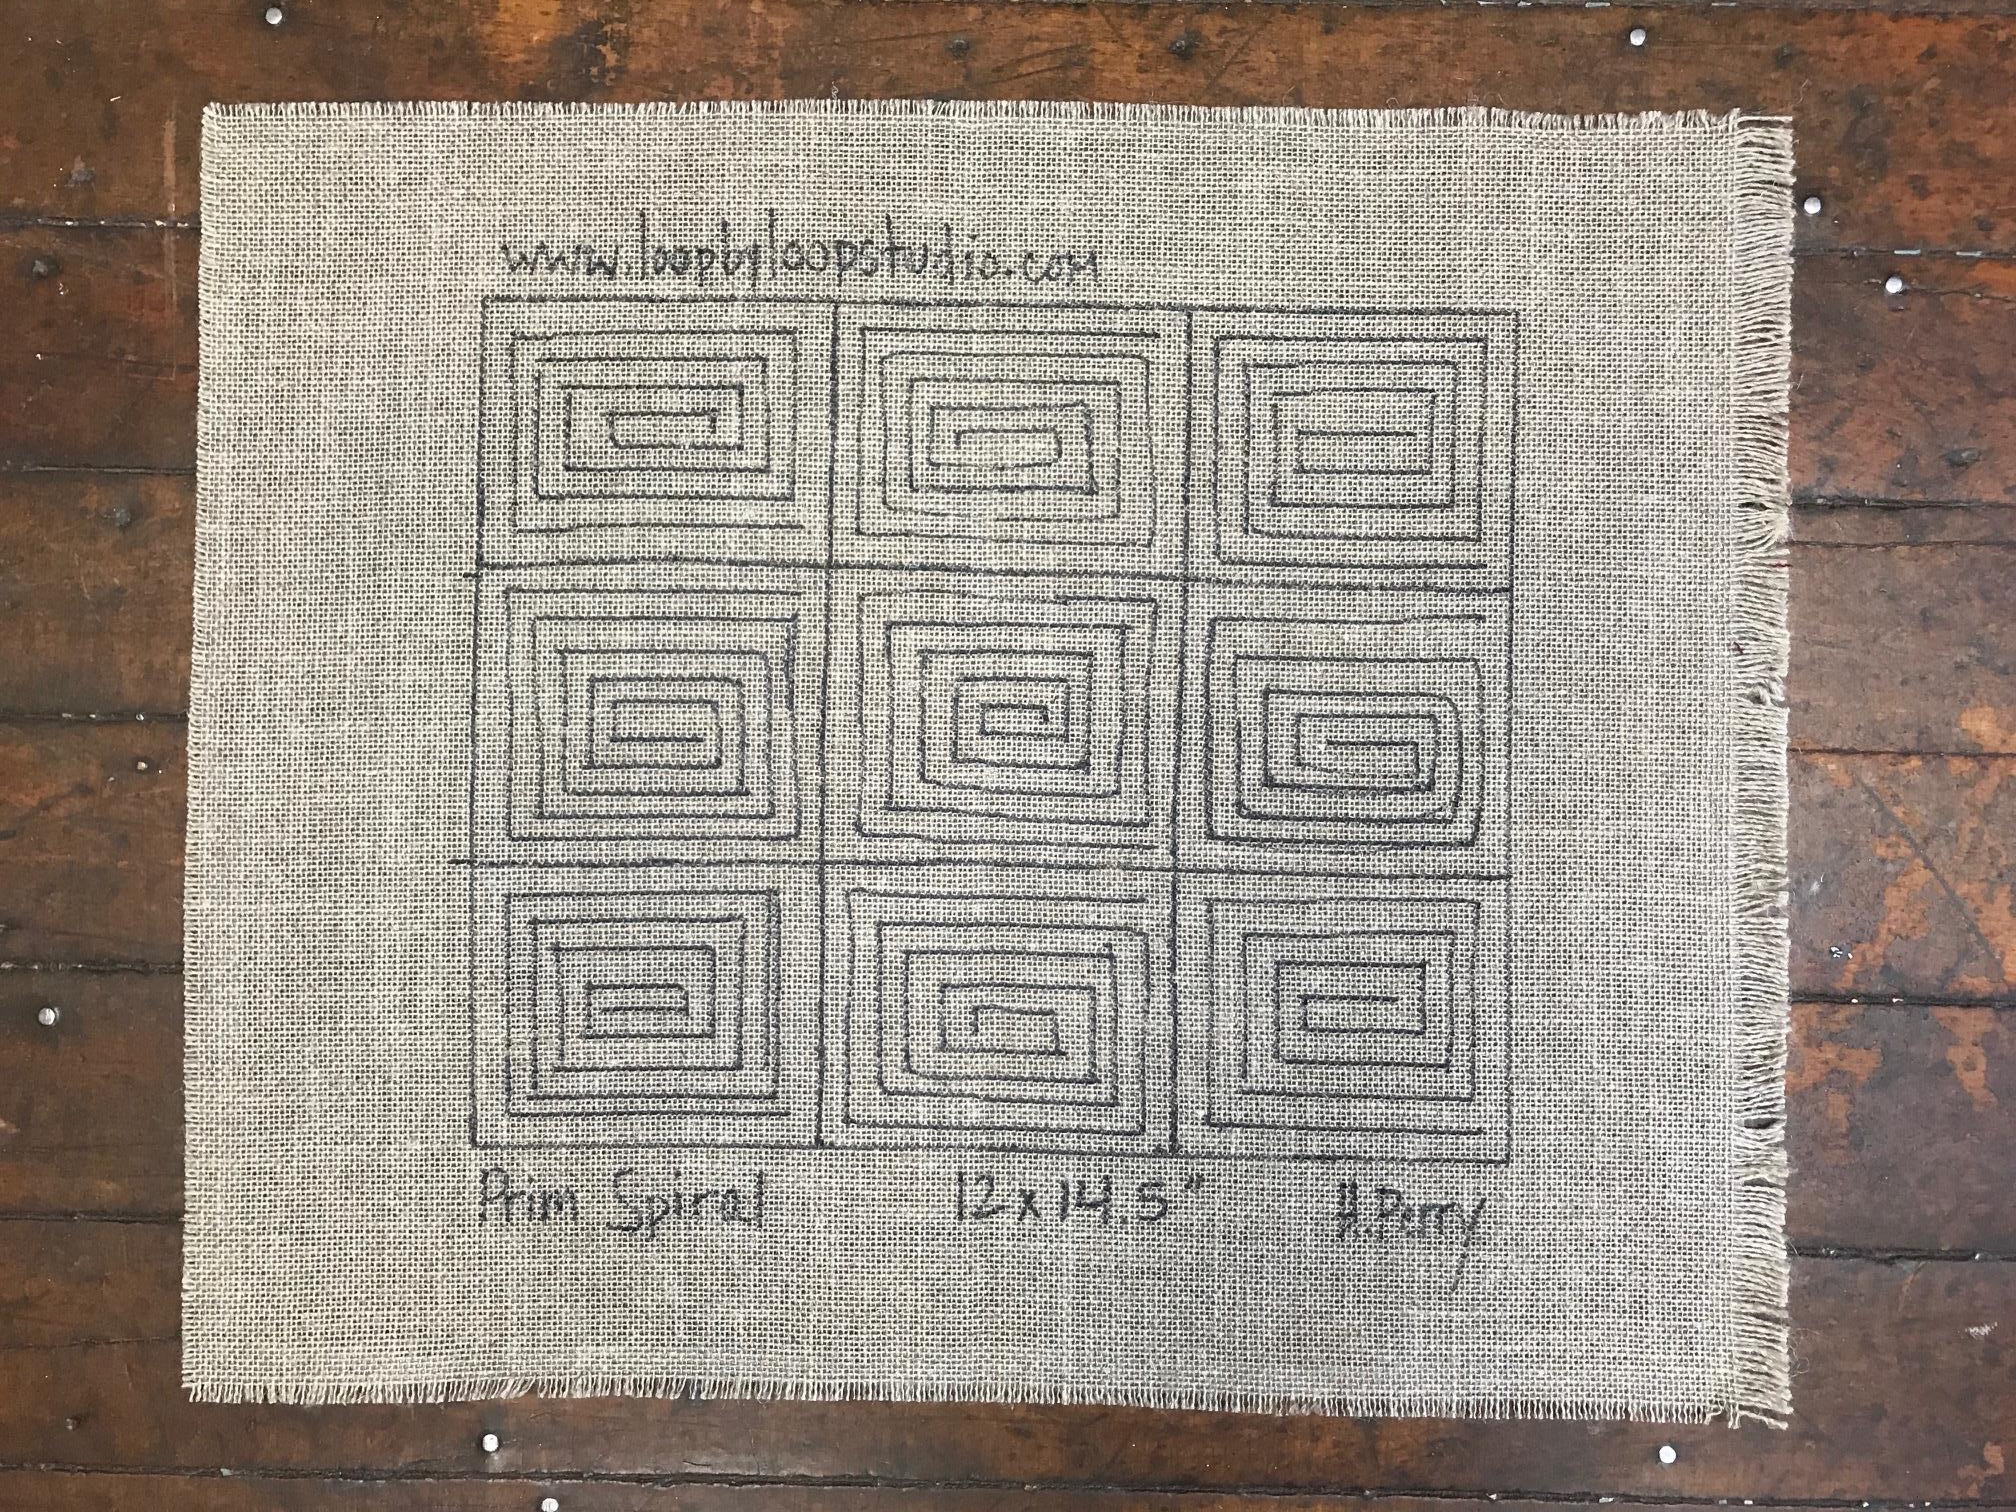 Primitive Spiral Original Hand Drawn 12 By 14 5 Inch Rug Hooking Pattern On Your Choice Of Foundation Loop By Loop Studio